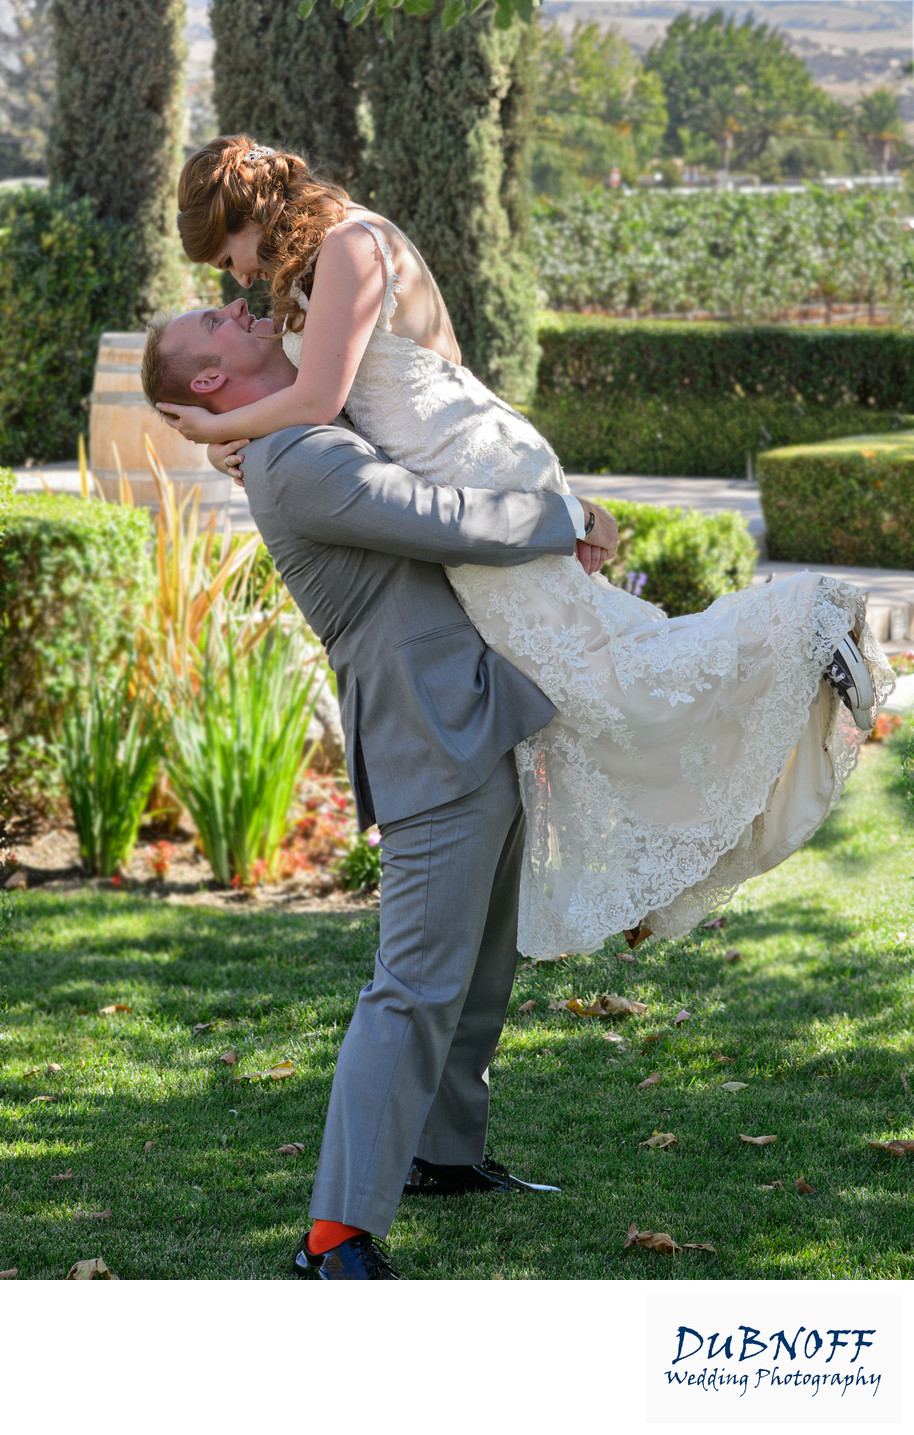 Groom Lifting Bride at Garre Vineyards in Livermore